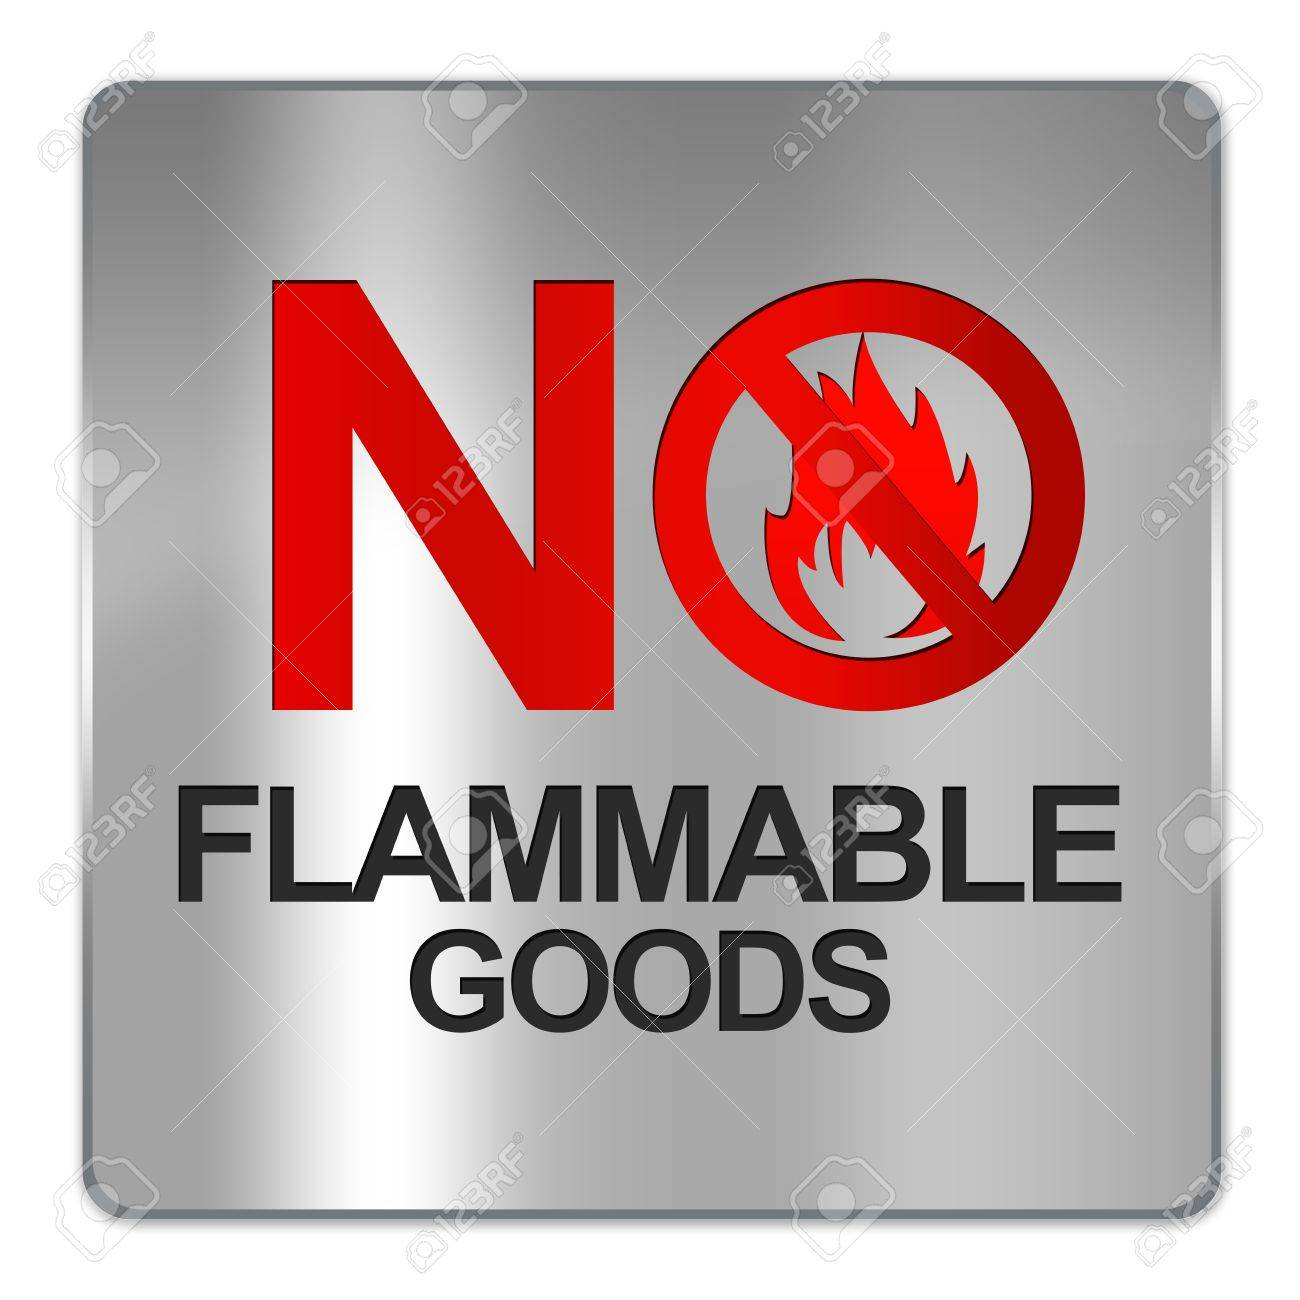 Square Silver Metallic Plate For No Flammable Goods Isolate on White Background Stock Photo - 17451779